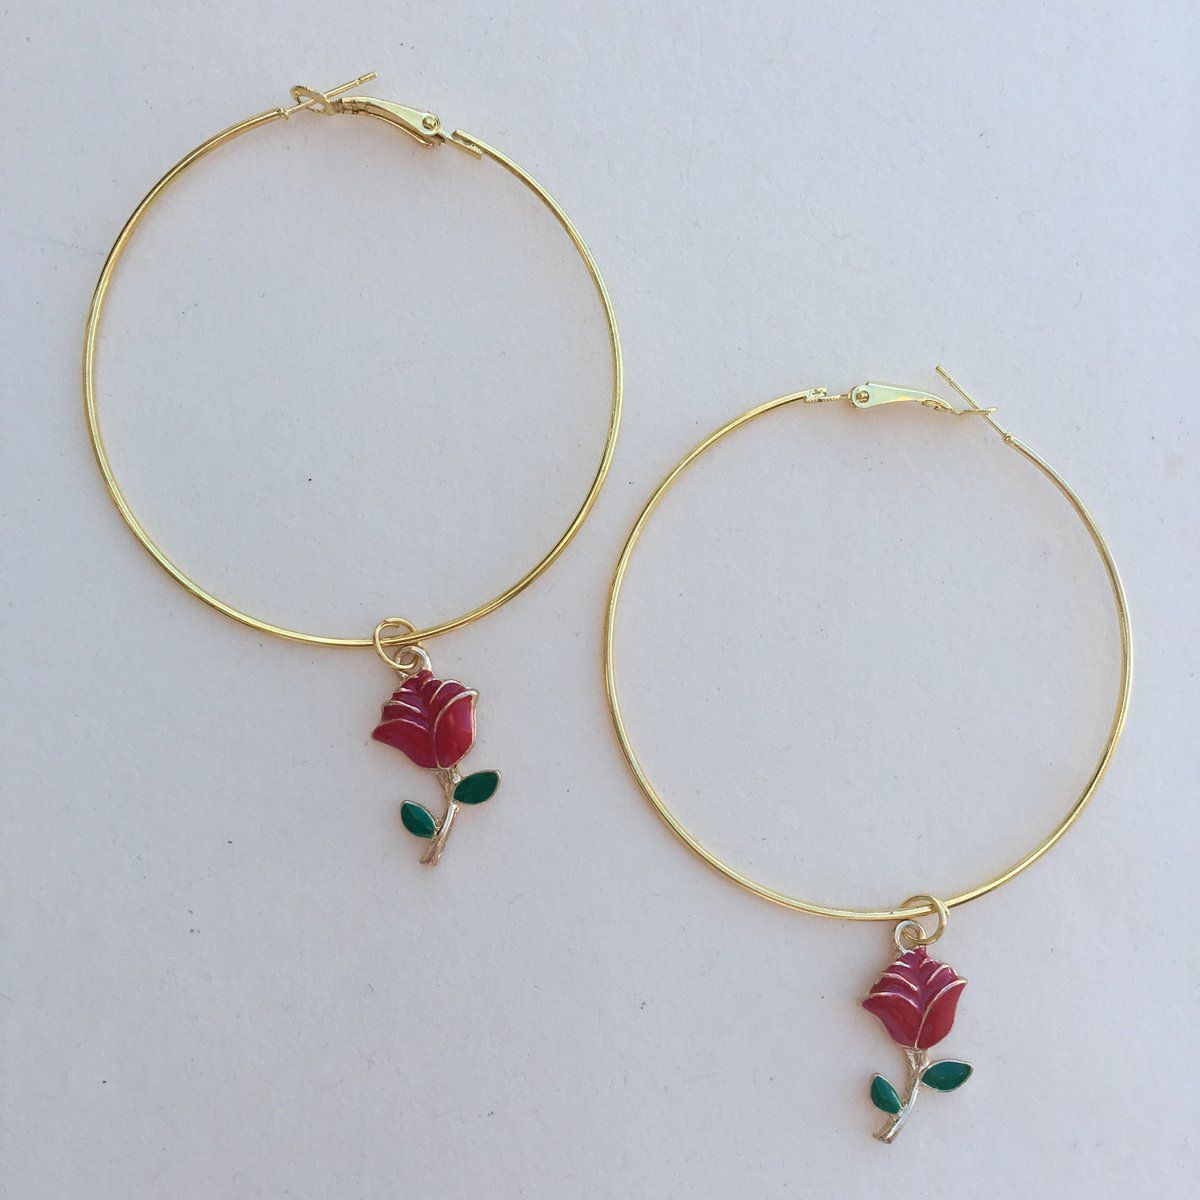 Gold Hoop Earrings With Little Red Rose Charms Diameter Is Ox 2 Material Alloy Lead And Nickel Free